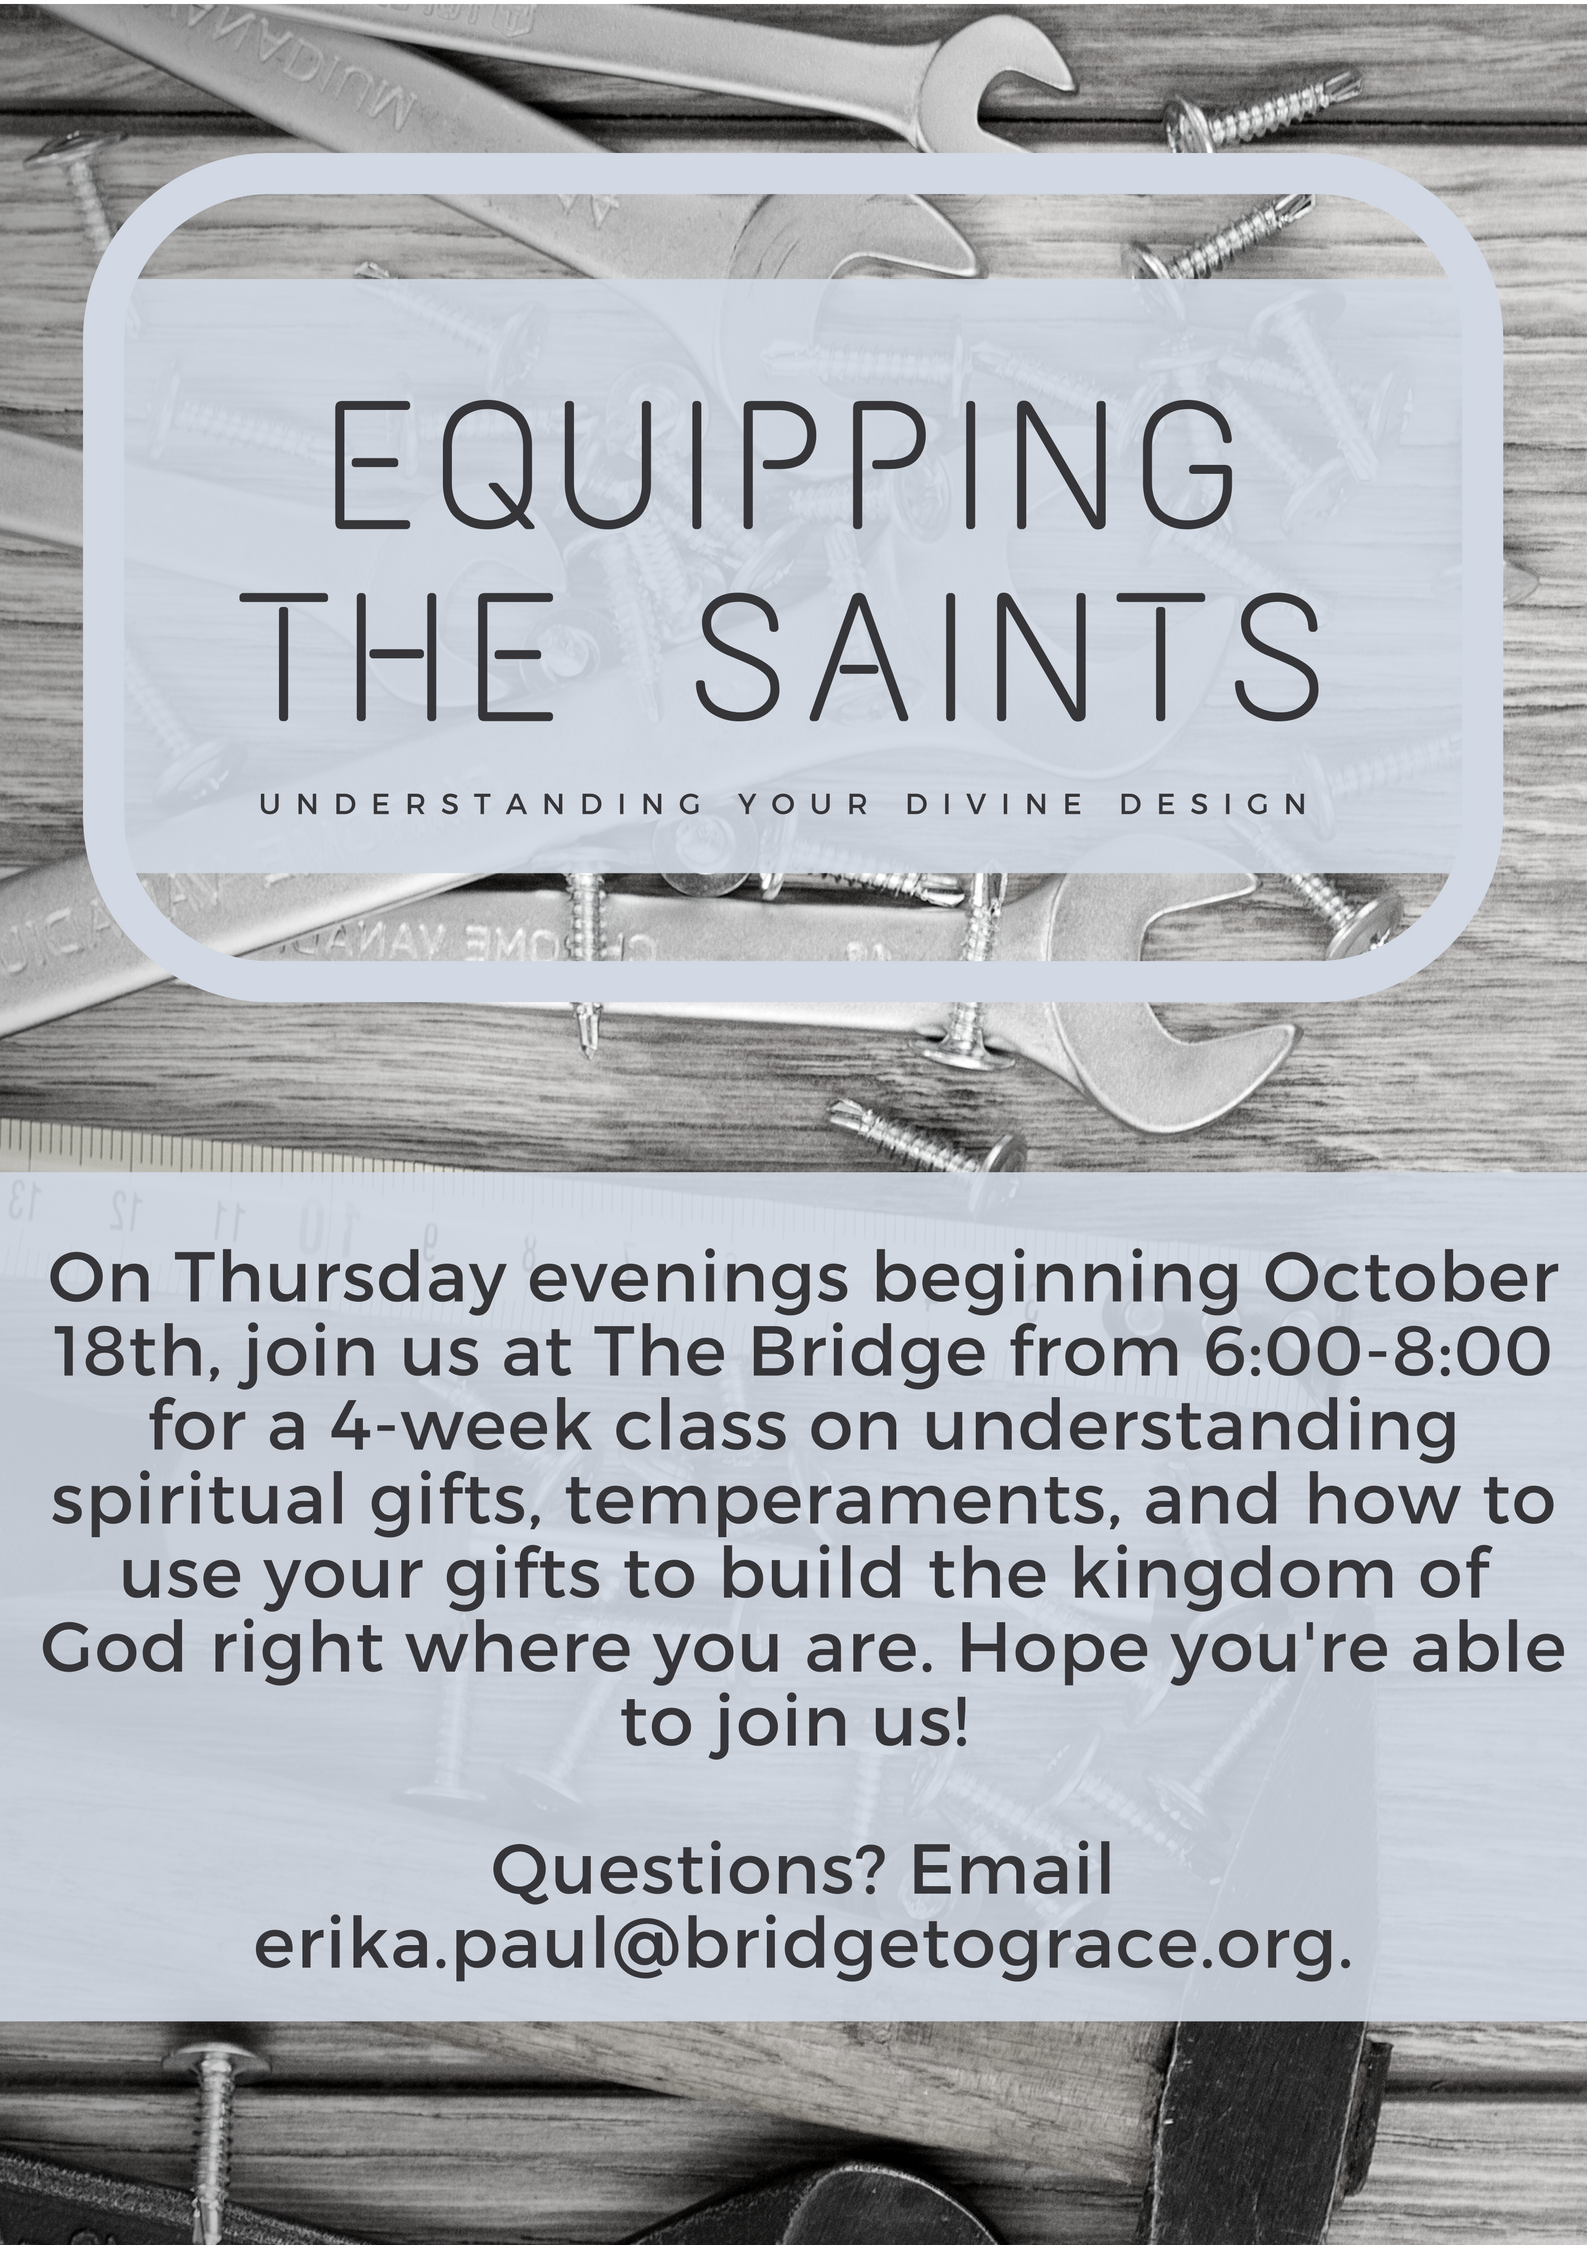 Copy of equipping the saints.png